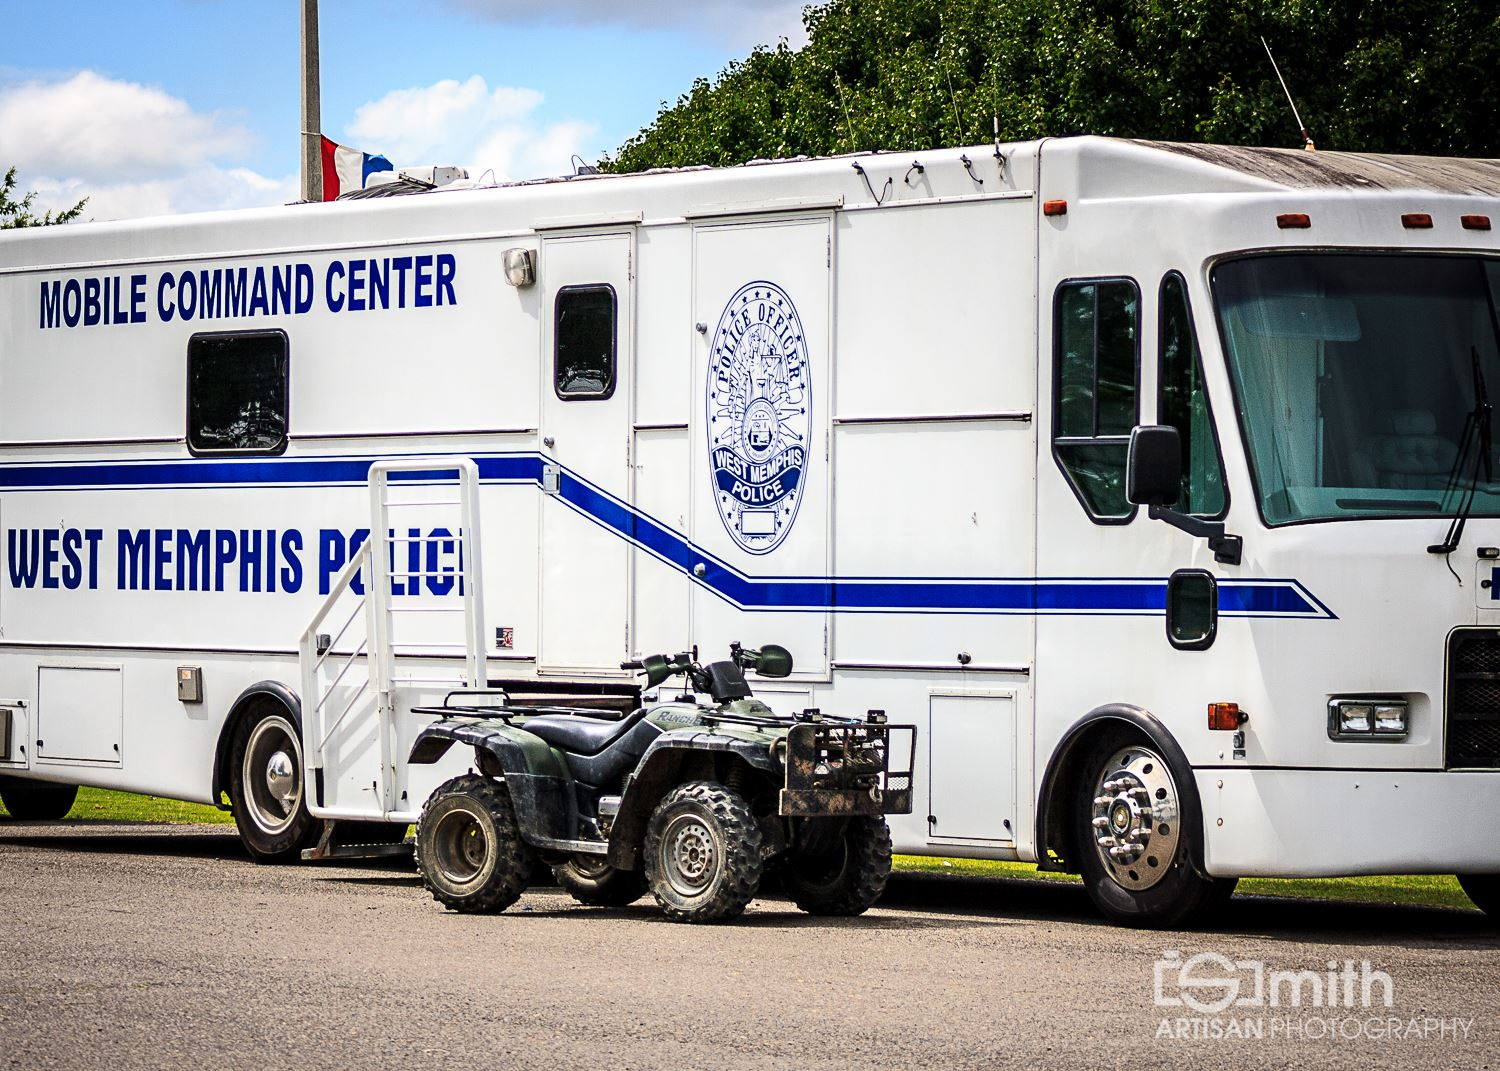 West Memphis Police Department Mobile Command Center